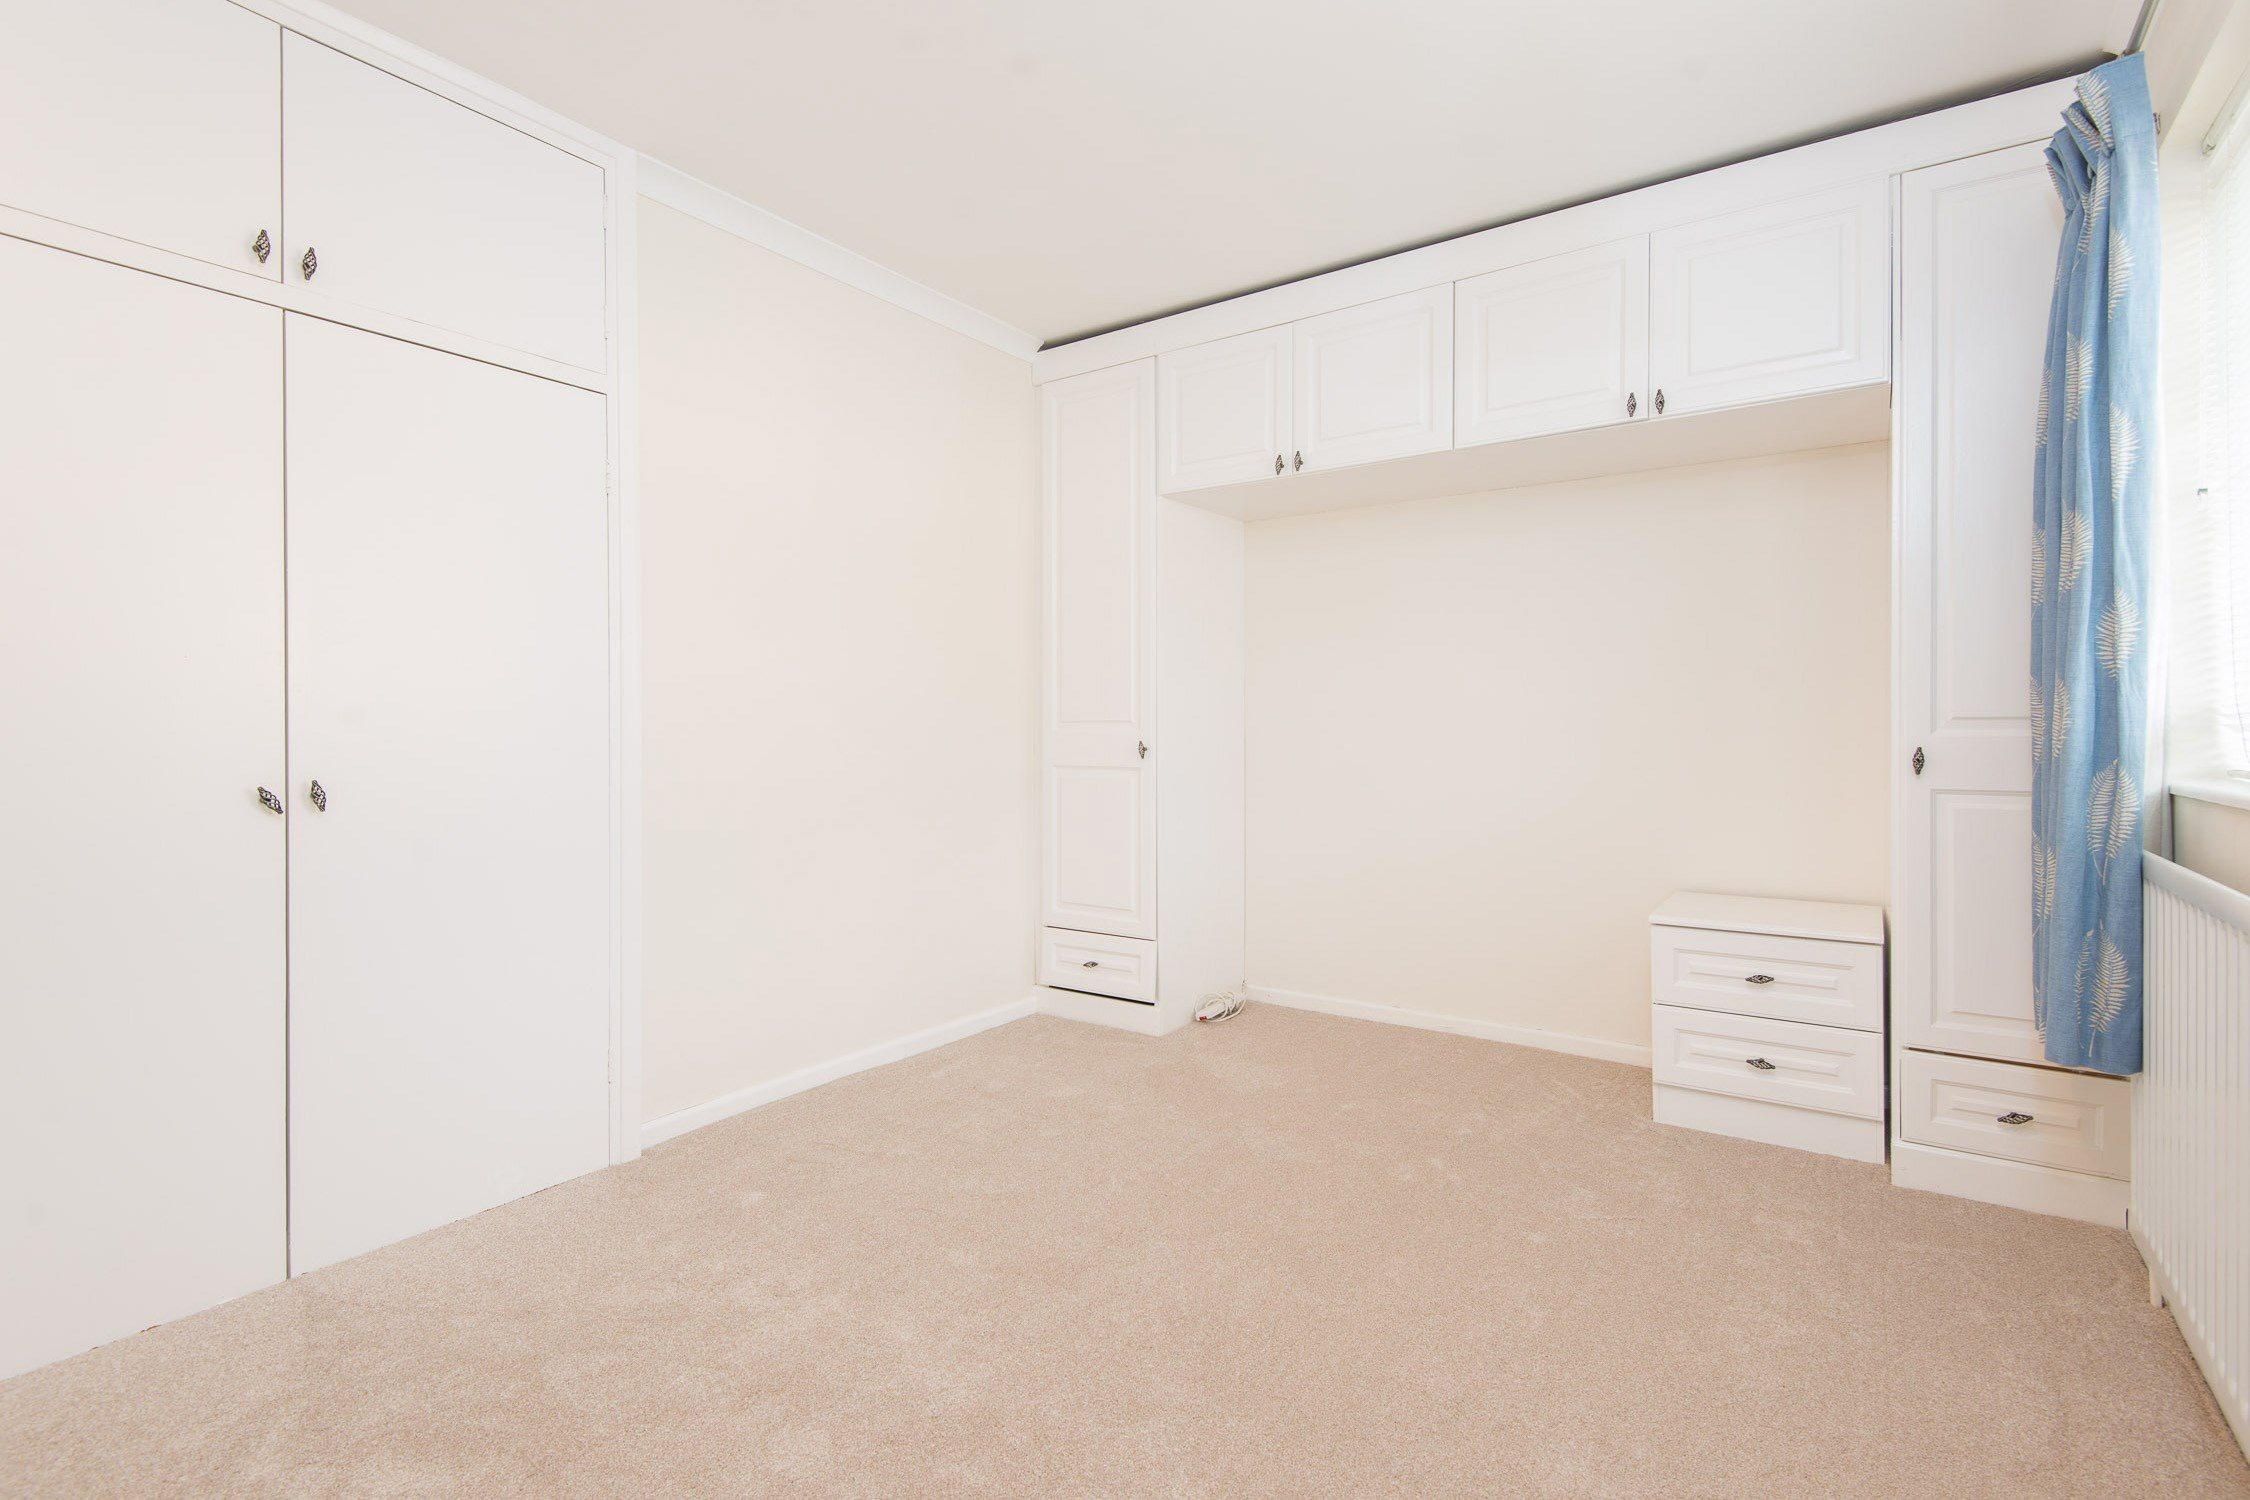 Portico 3 bedroom flat recently let in chiswick for W 4 bathrooms chiswick